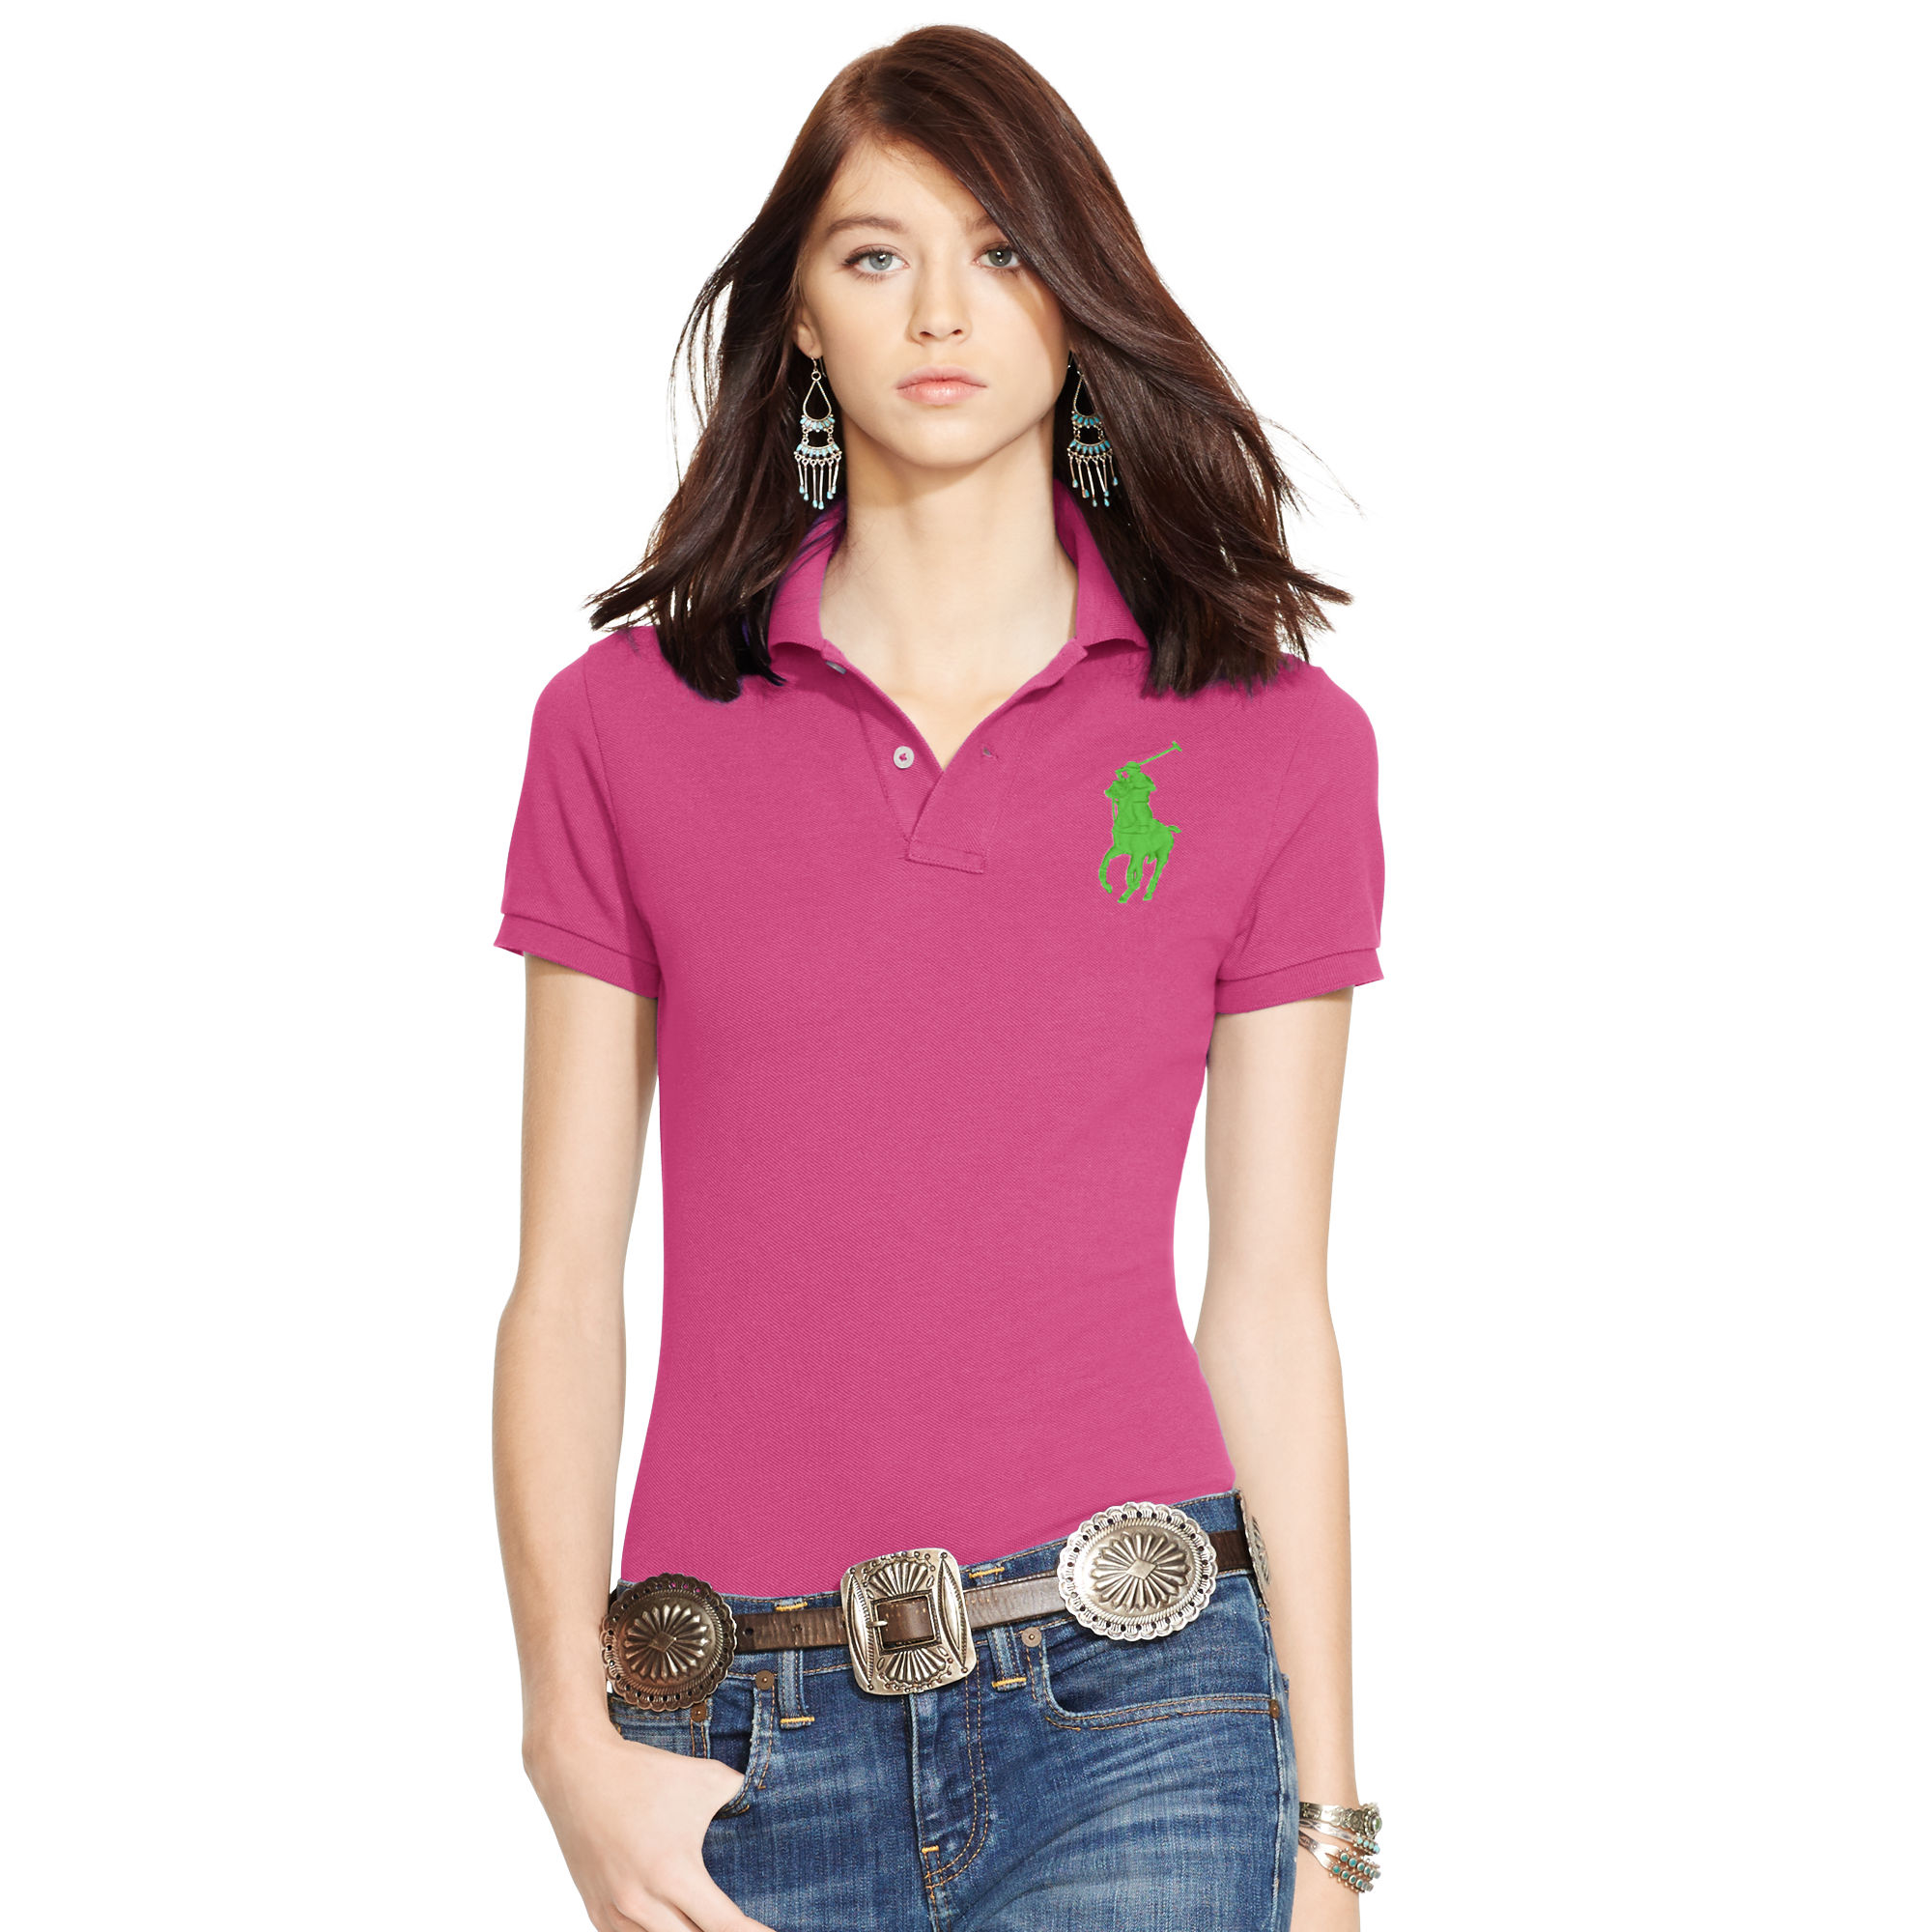 dcd472f72d48 Polo Ralph Lauren Skinny-fit Big Pony Polo Shirt in Pink - Lyst